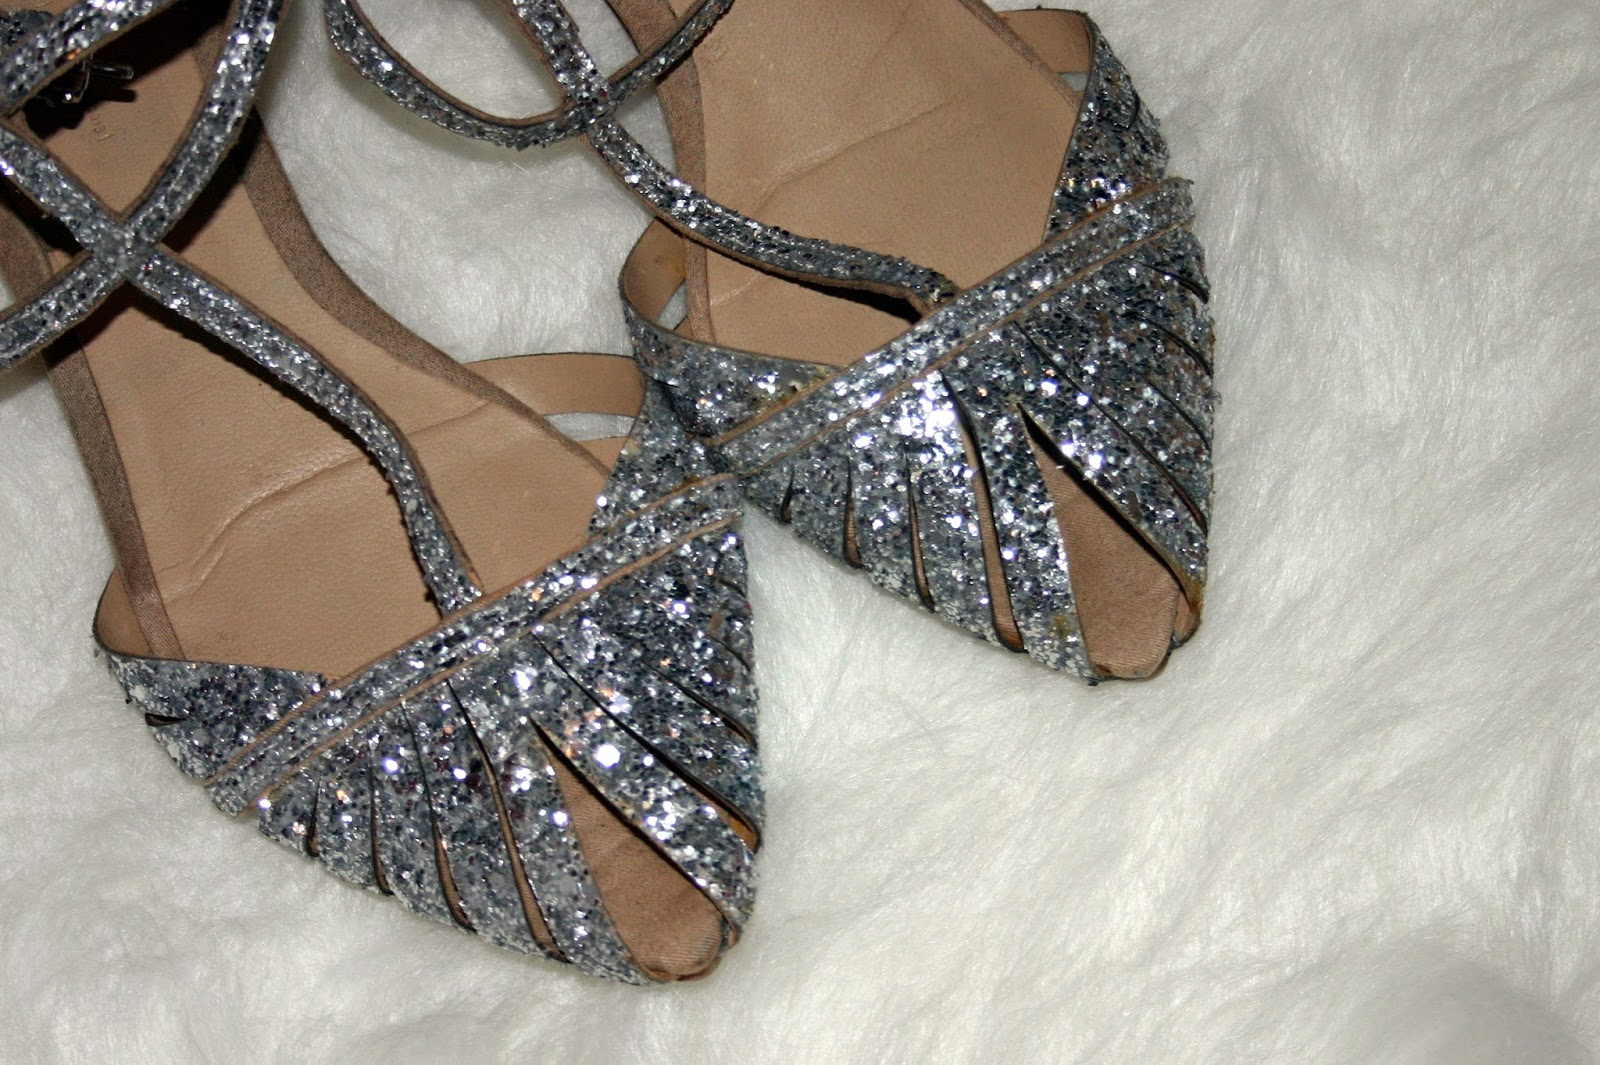 Day to Day of a Dazzling Diva: Poshmark - An Honest Review